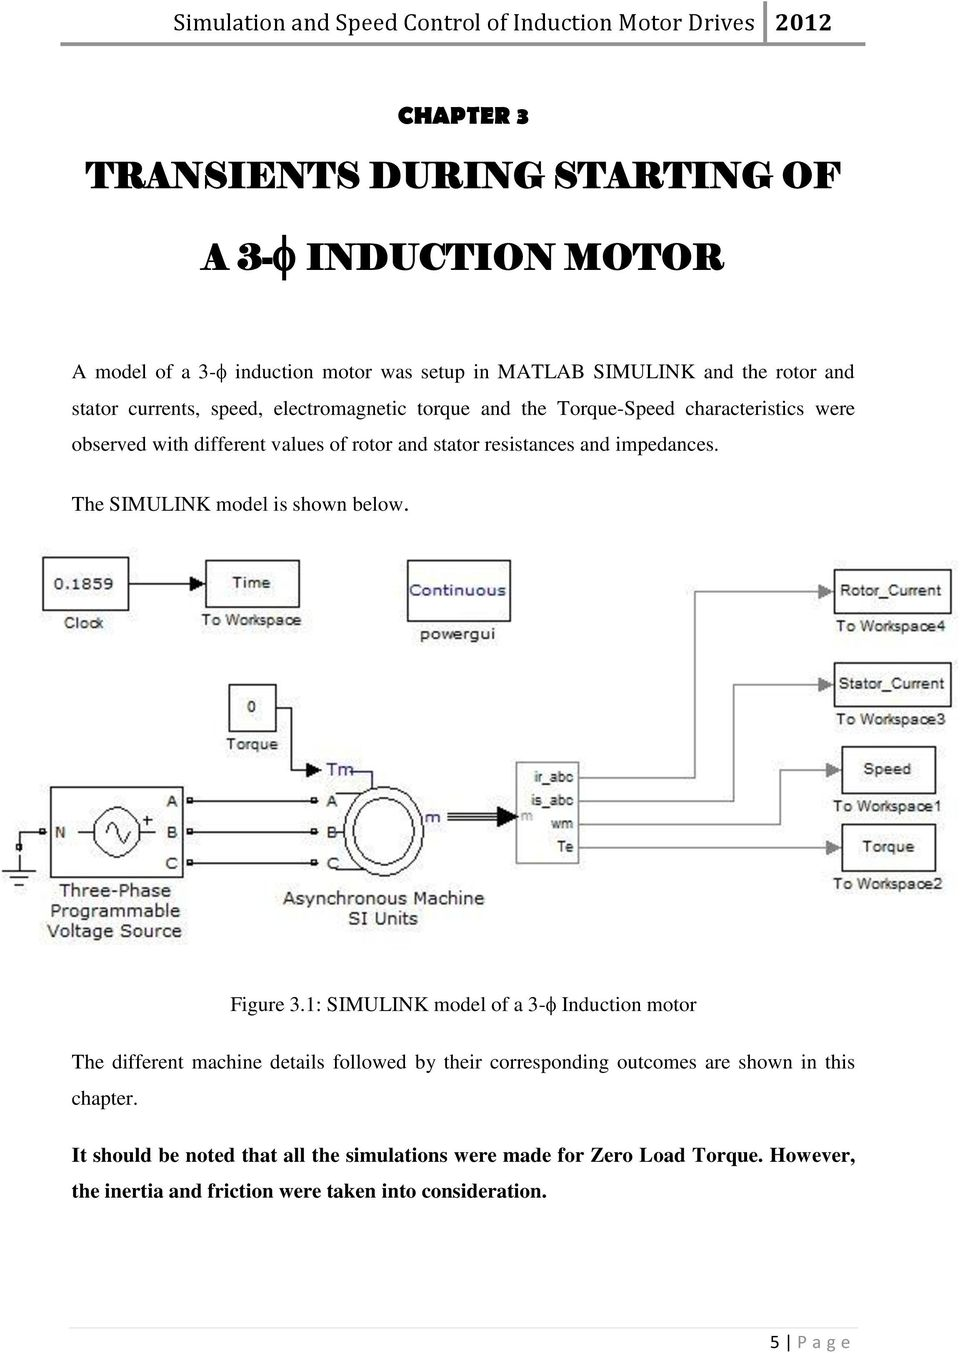 SIMULATION AND SPEED CONTROL OF INDUCTION MOTOR DRIVES - PDF